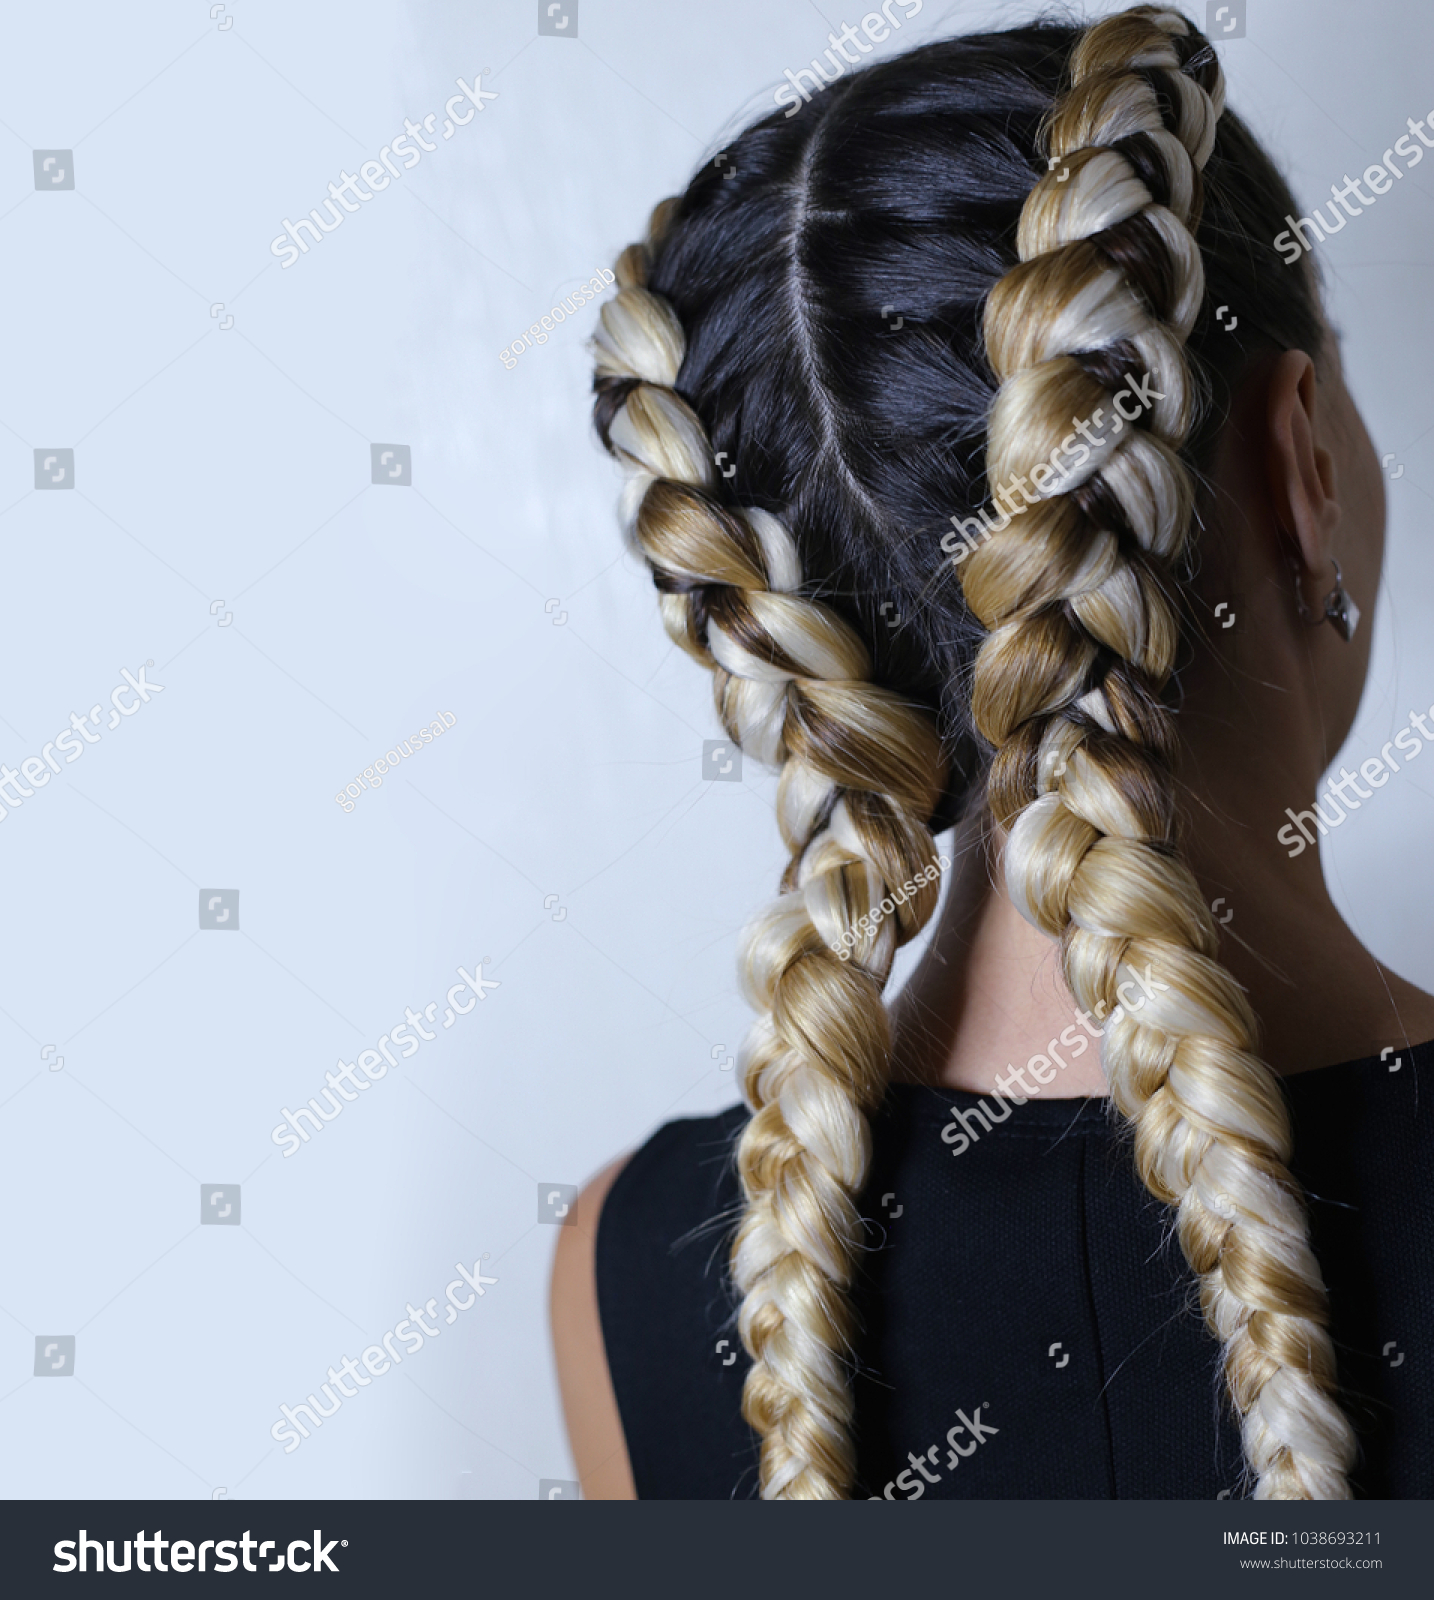 Two Thick Braids Artificial Hair Youth Stock Photo Edit Now 1038693211 So long that you like what you see. https www shutterstock com image photo two thick braids artificial hair youth 1038693211